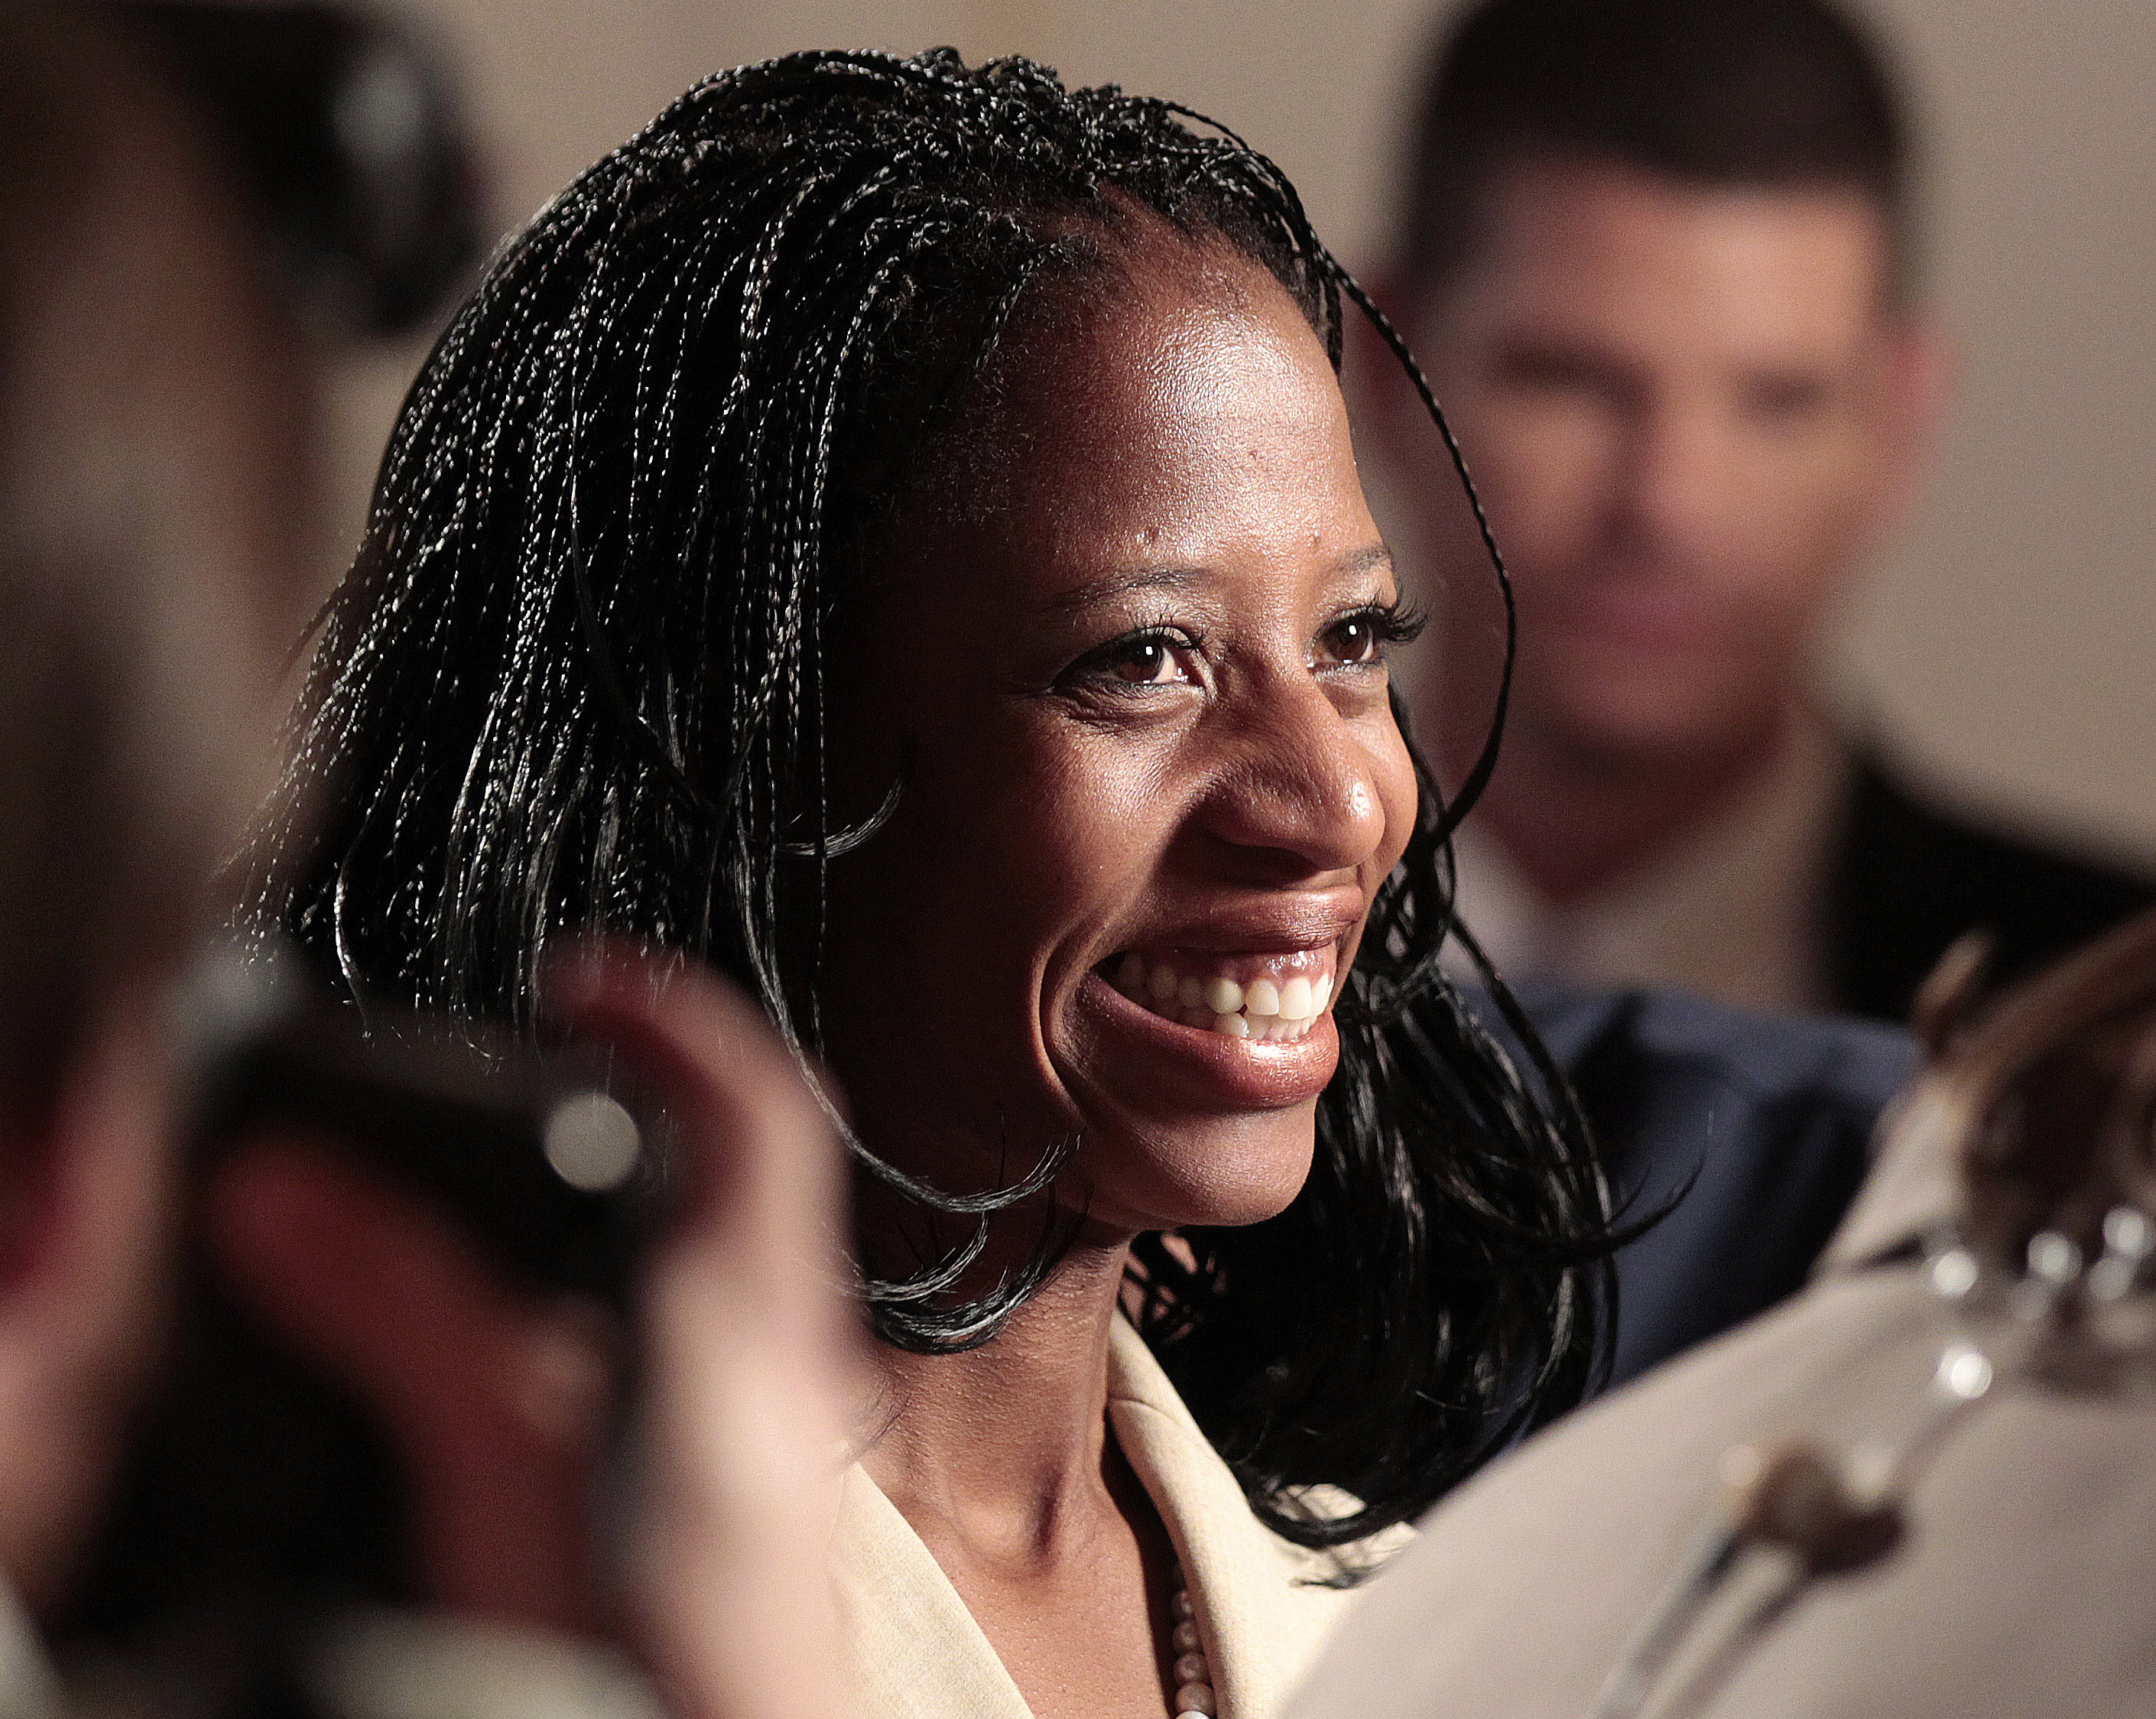 Mia Love, the Republican candidate for the 4th congressional district, talks to the press from the party headquarters as results come in for the U.S. presidential election in Salt Lake City, Utah, November 6, 2012. REUTERS/George Frey